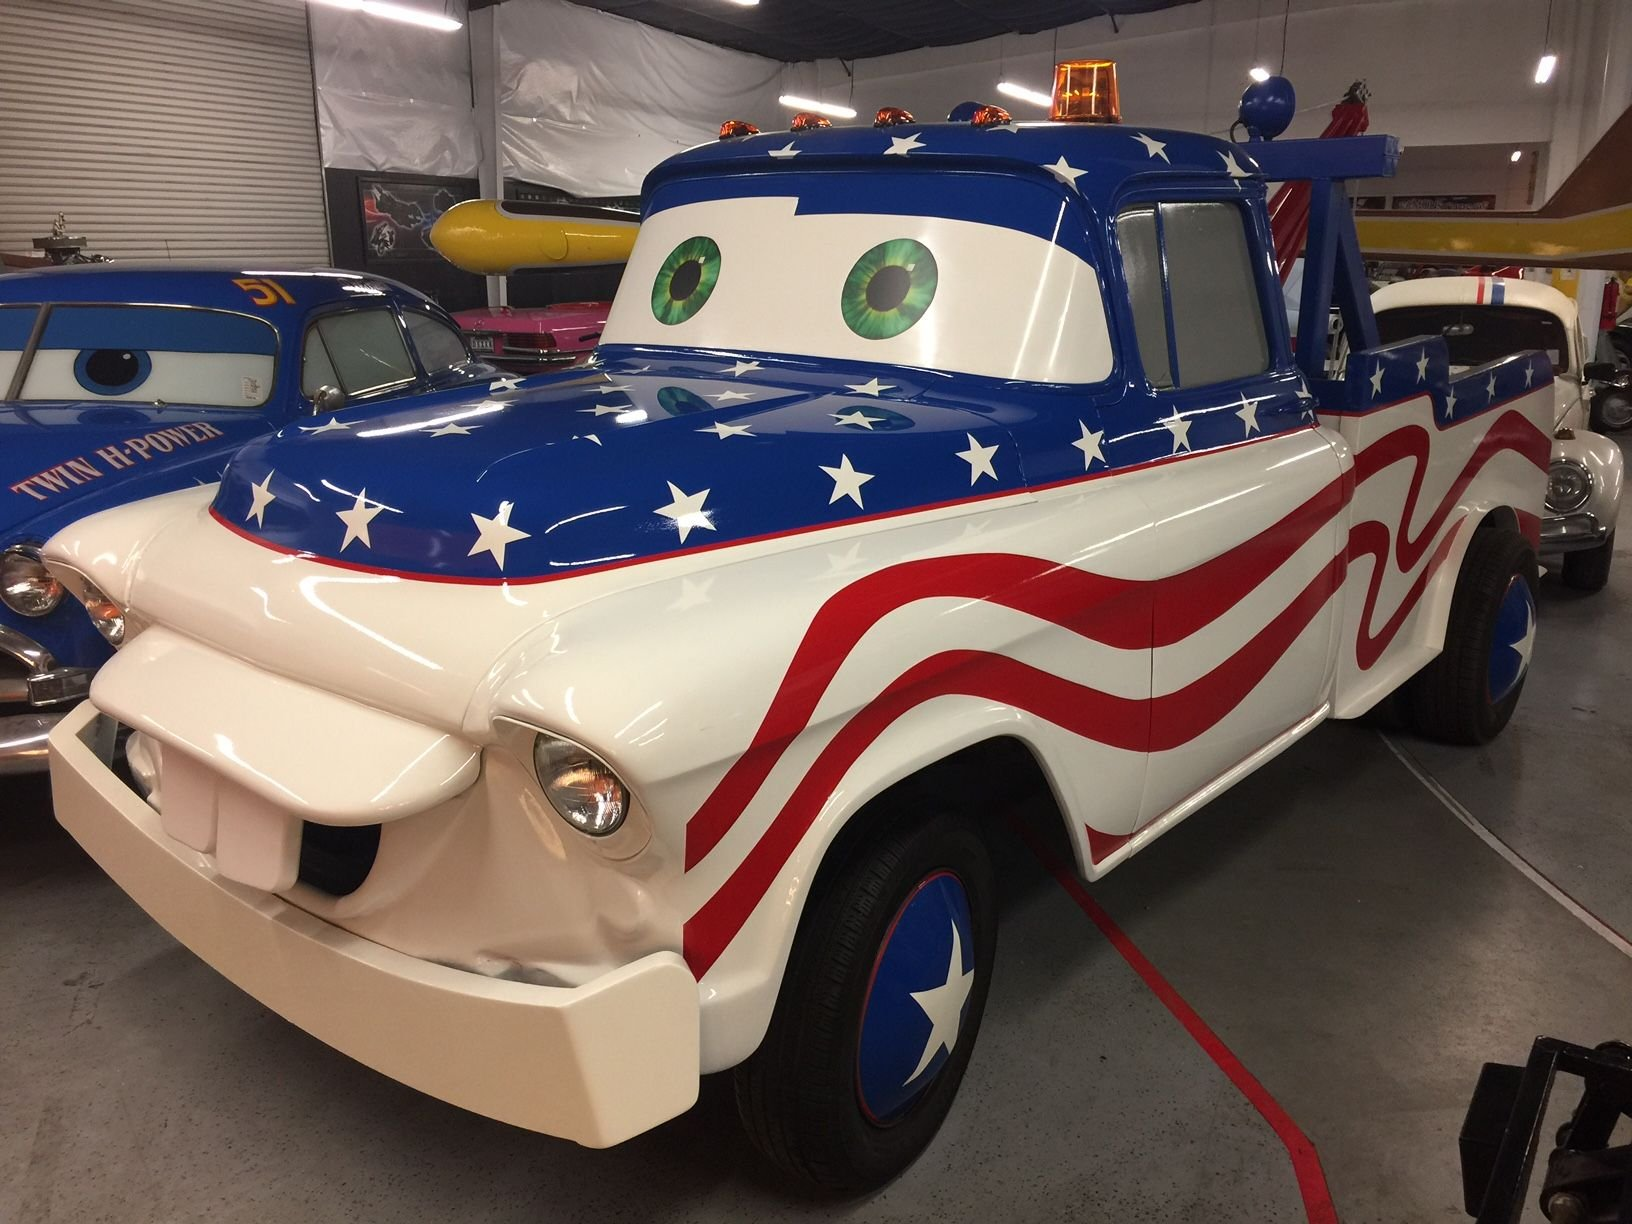 N a tow truck project car